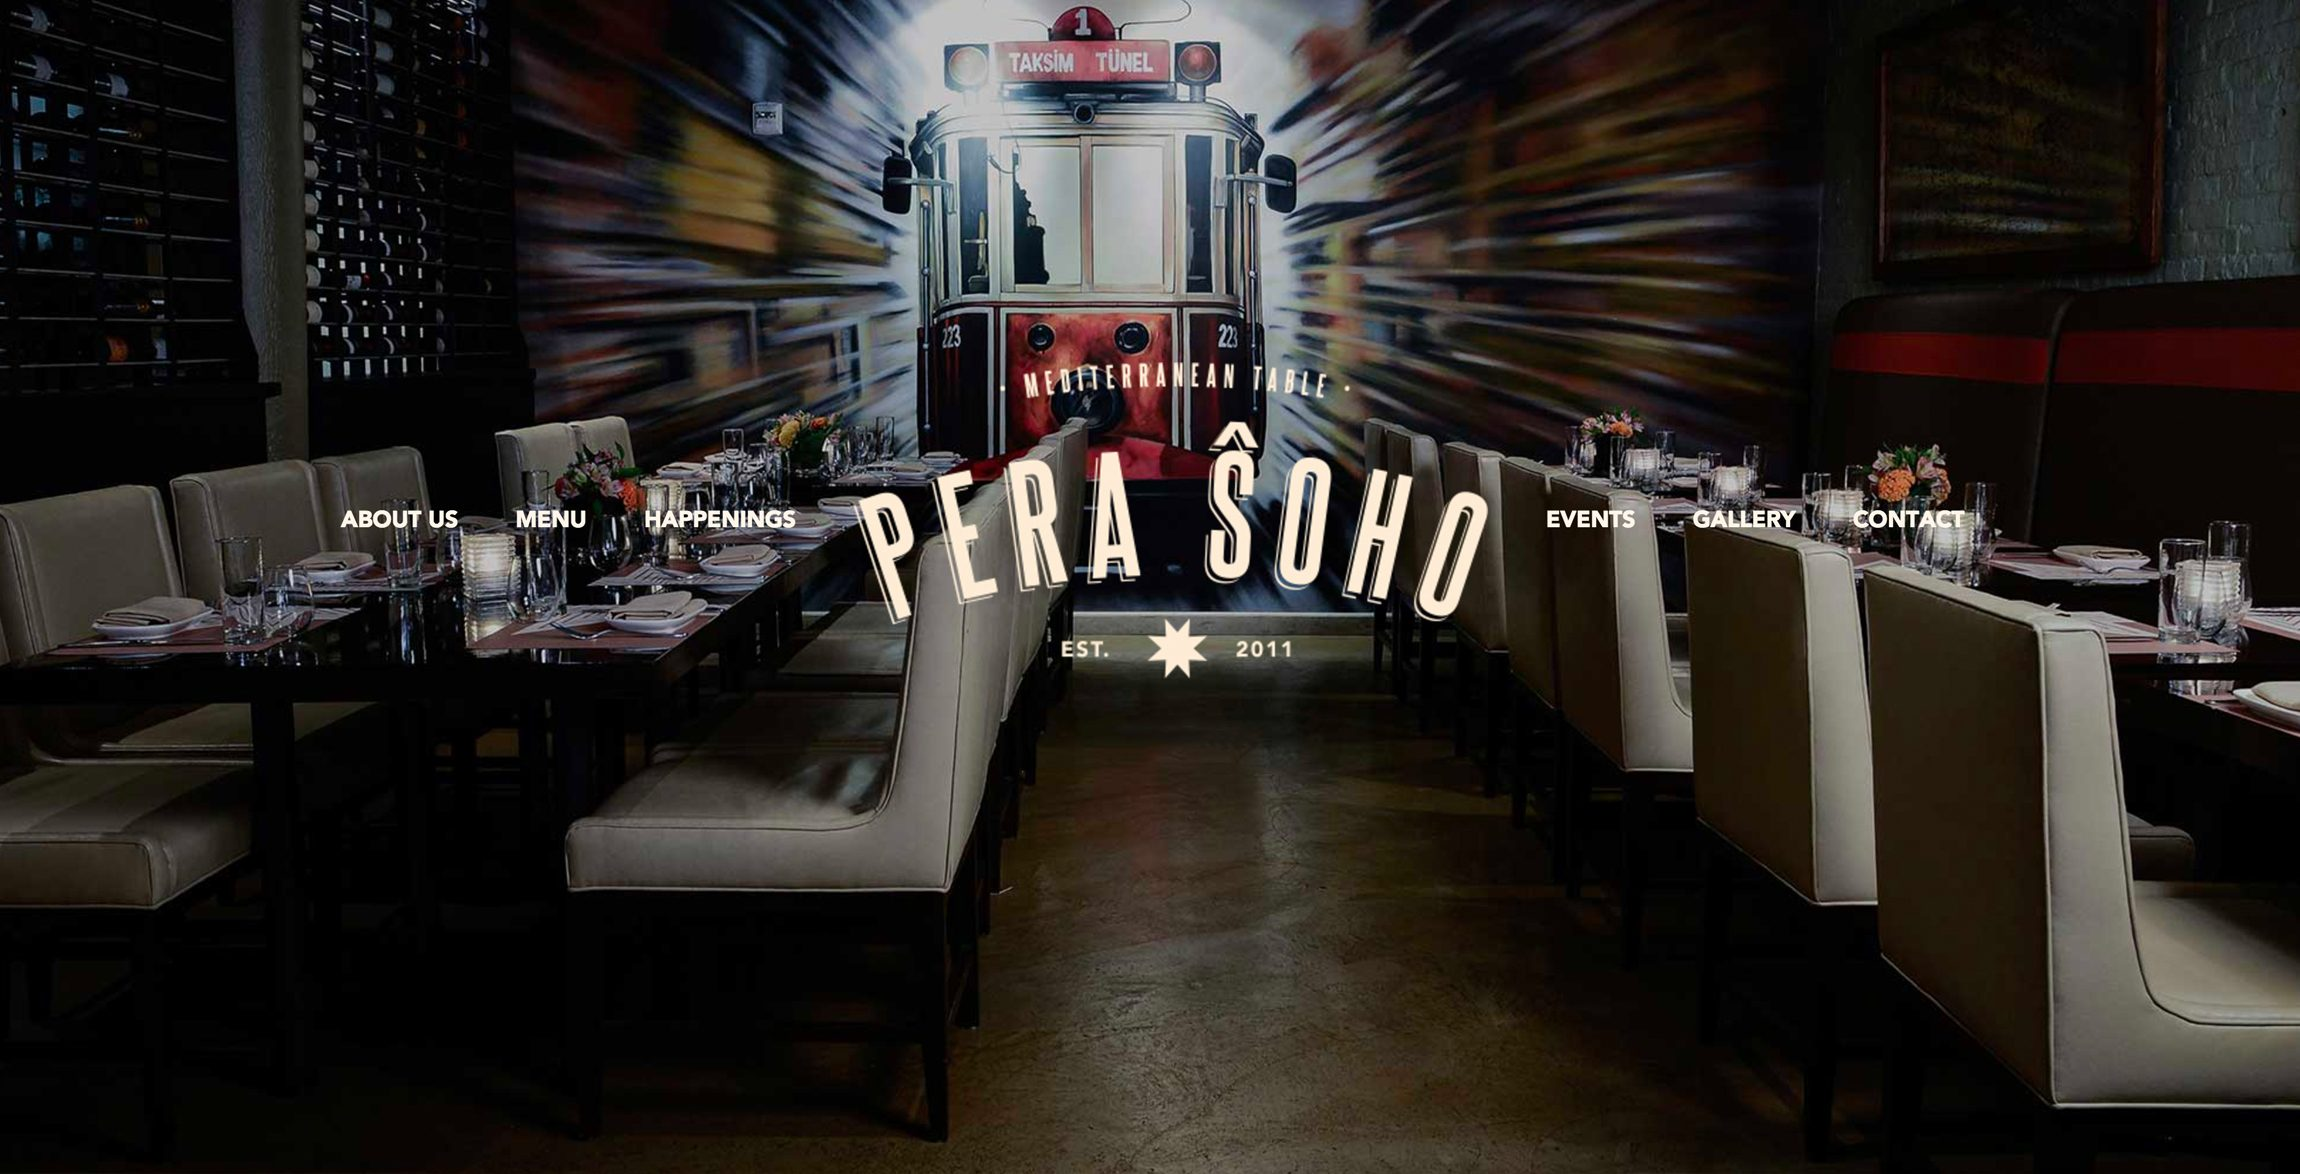 Pera Soho Big Idea